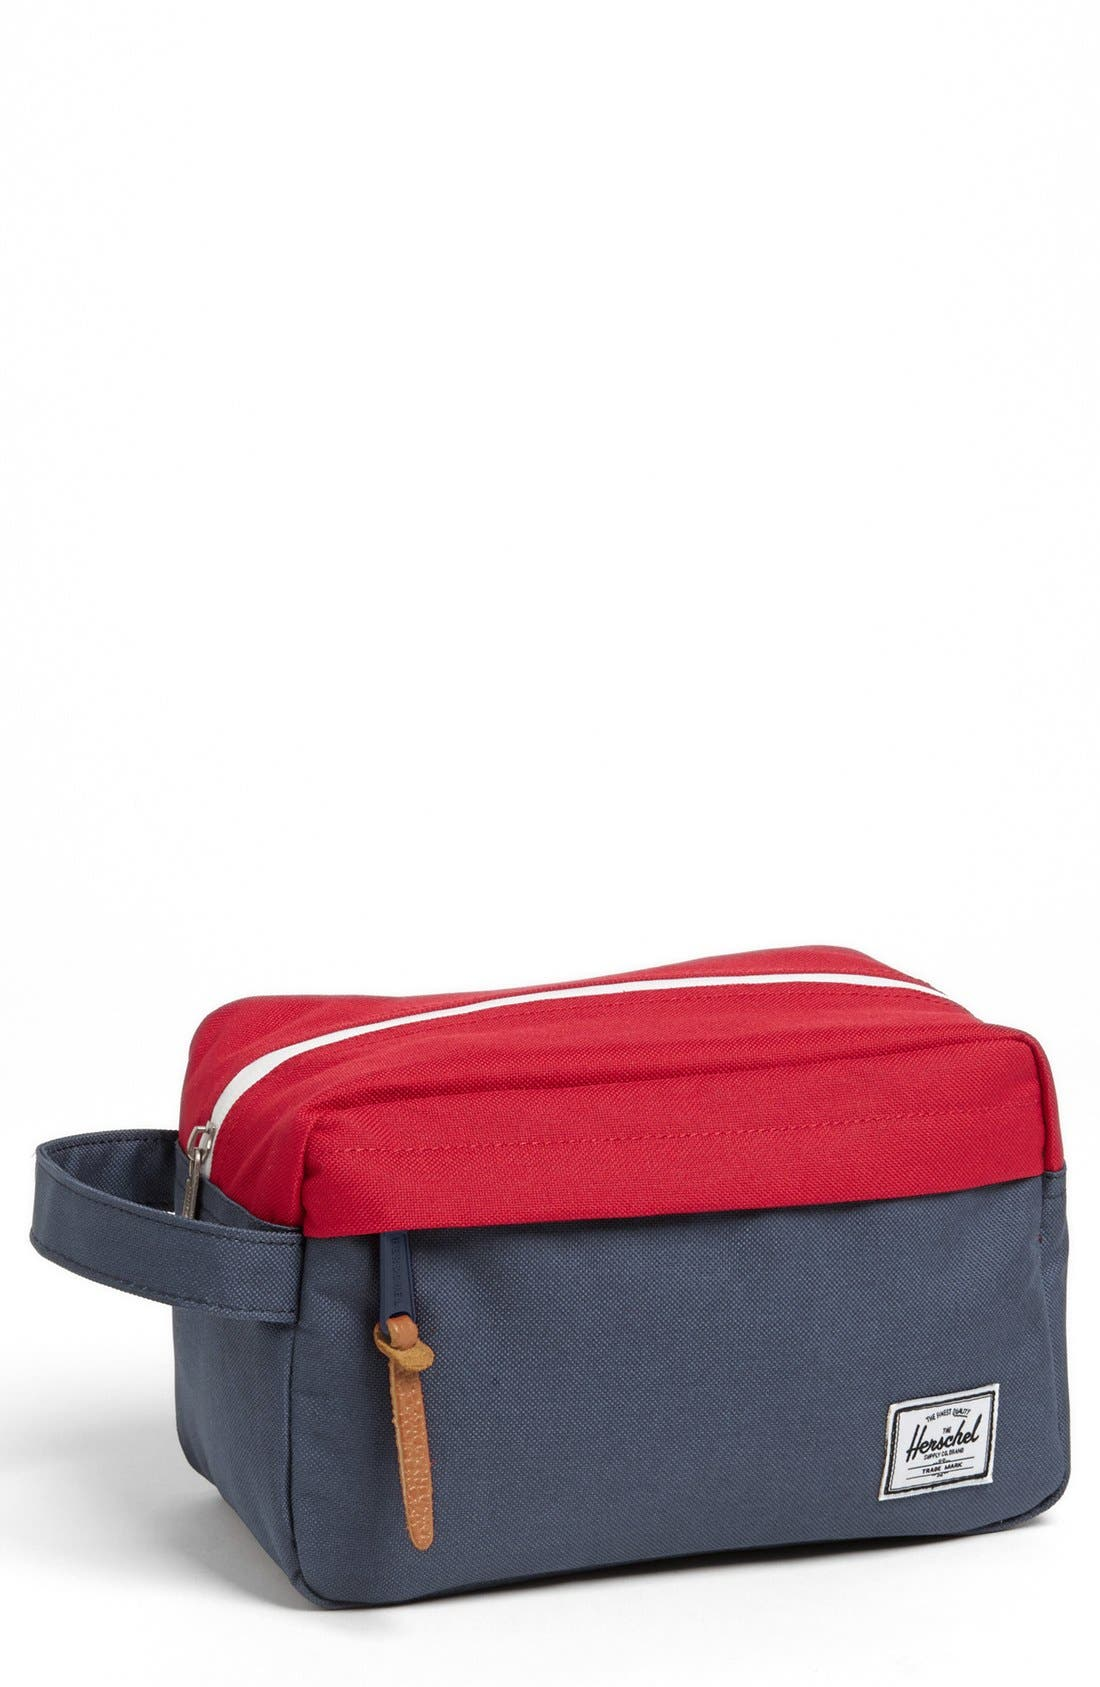 'Chapter' Toiletry Case,                         Main,                         color, NAVY/ RED